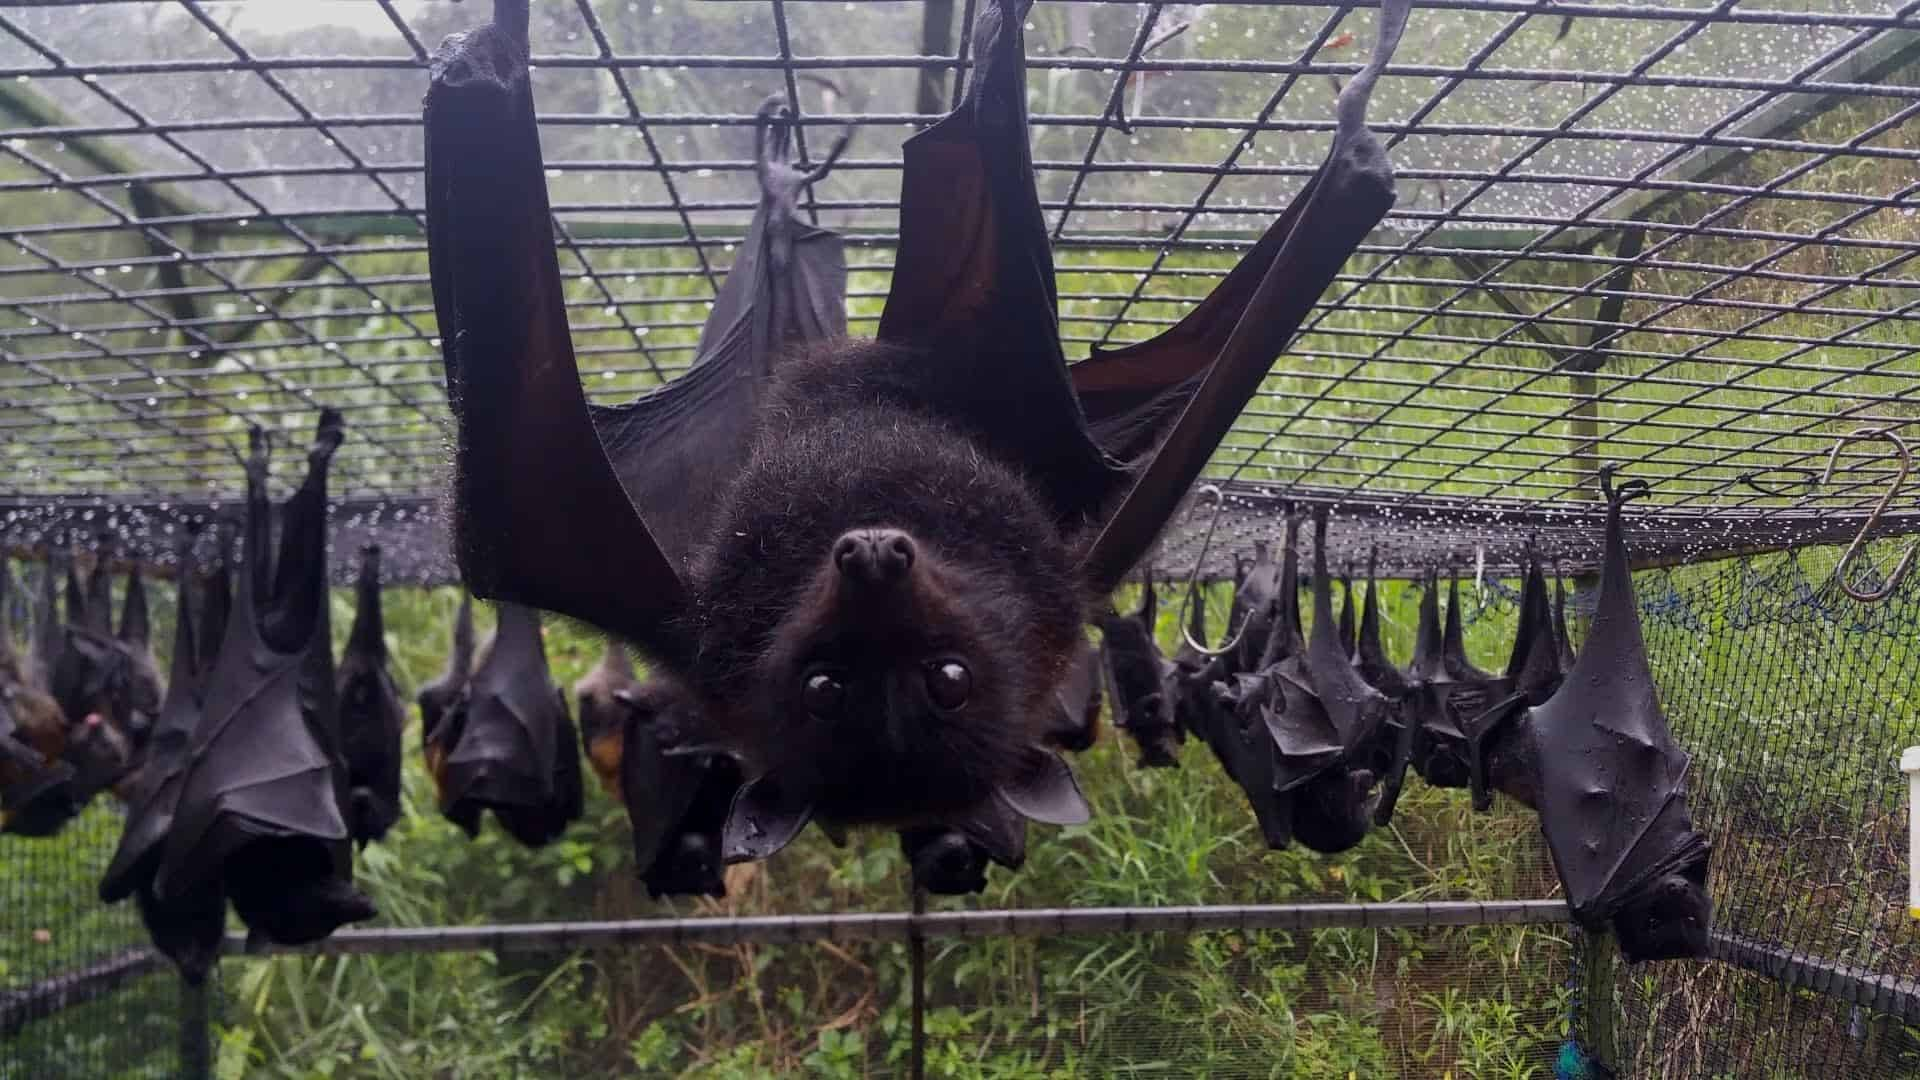 What If Giant Bats Were The Same Size As Humans?